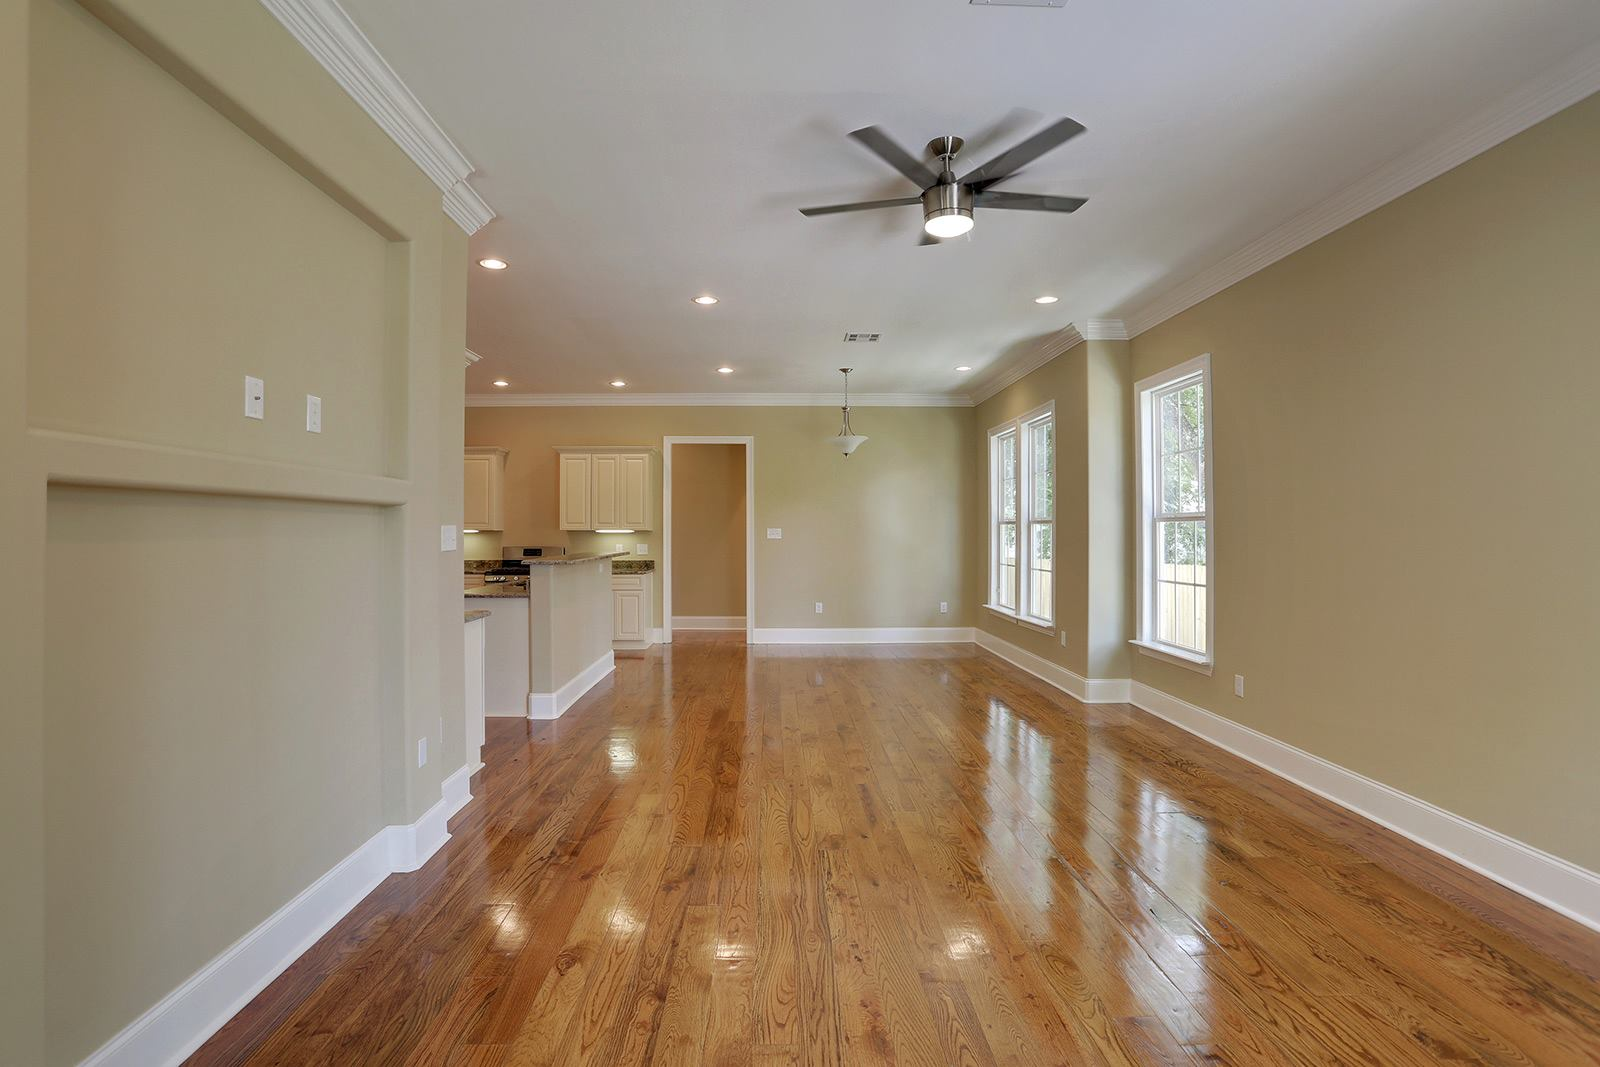 Family Room - Real hardwood floors throughout